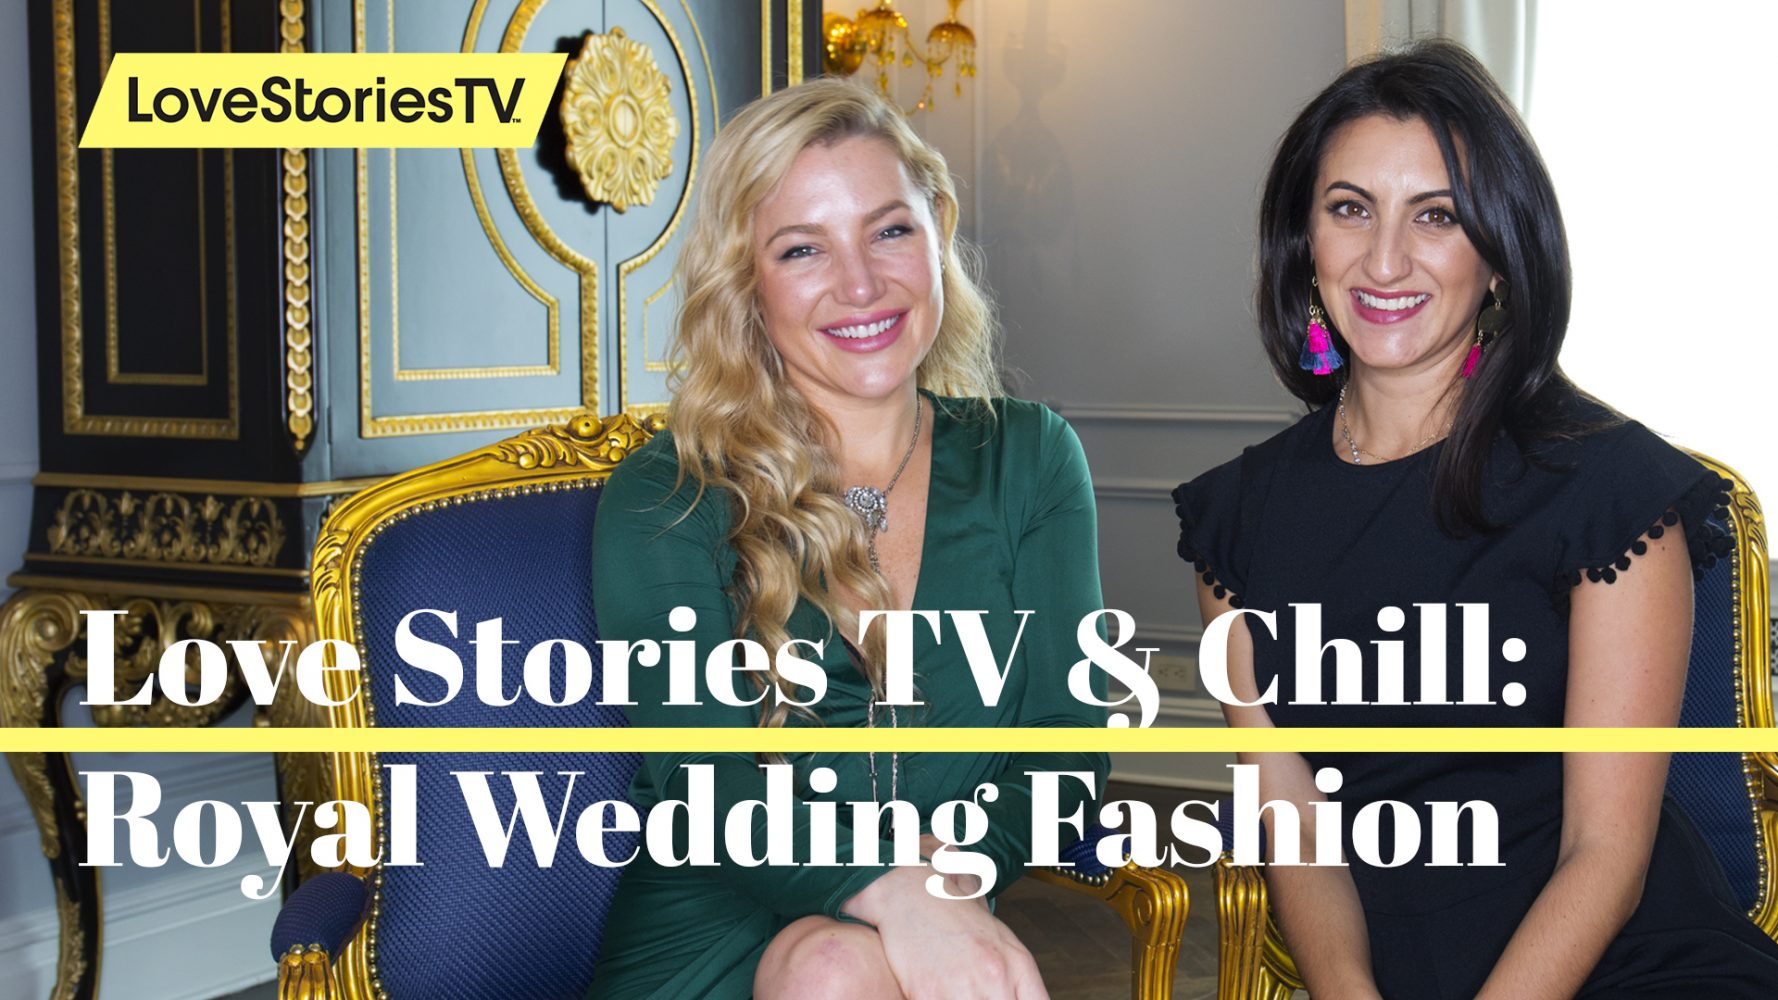 #LoveStoriesTVandChill Episode 17: Royal Wedding Fashion With Hayley Paige